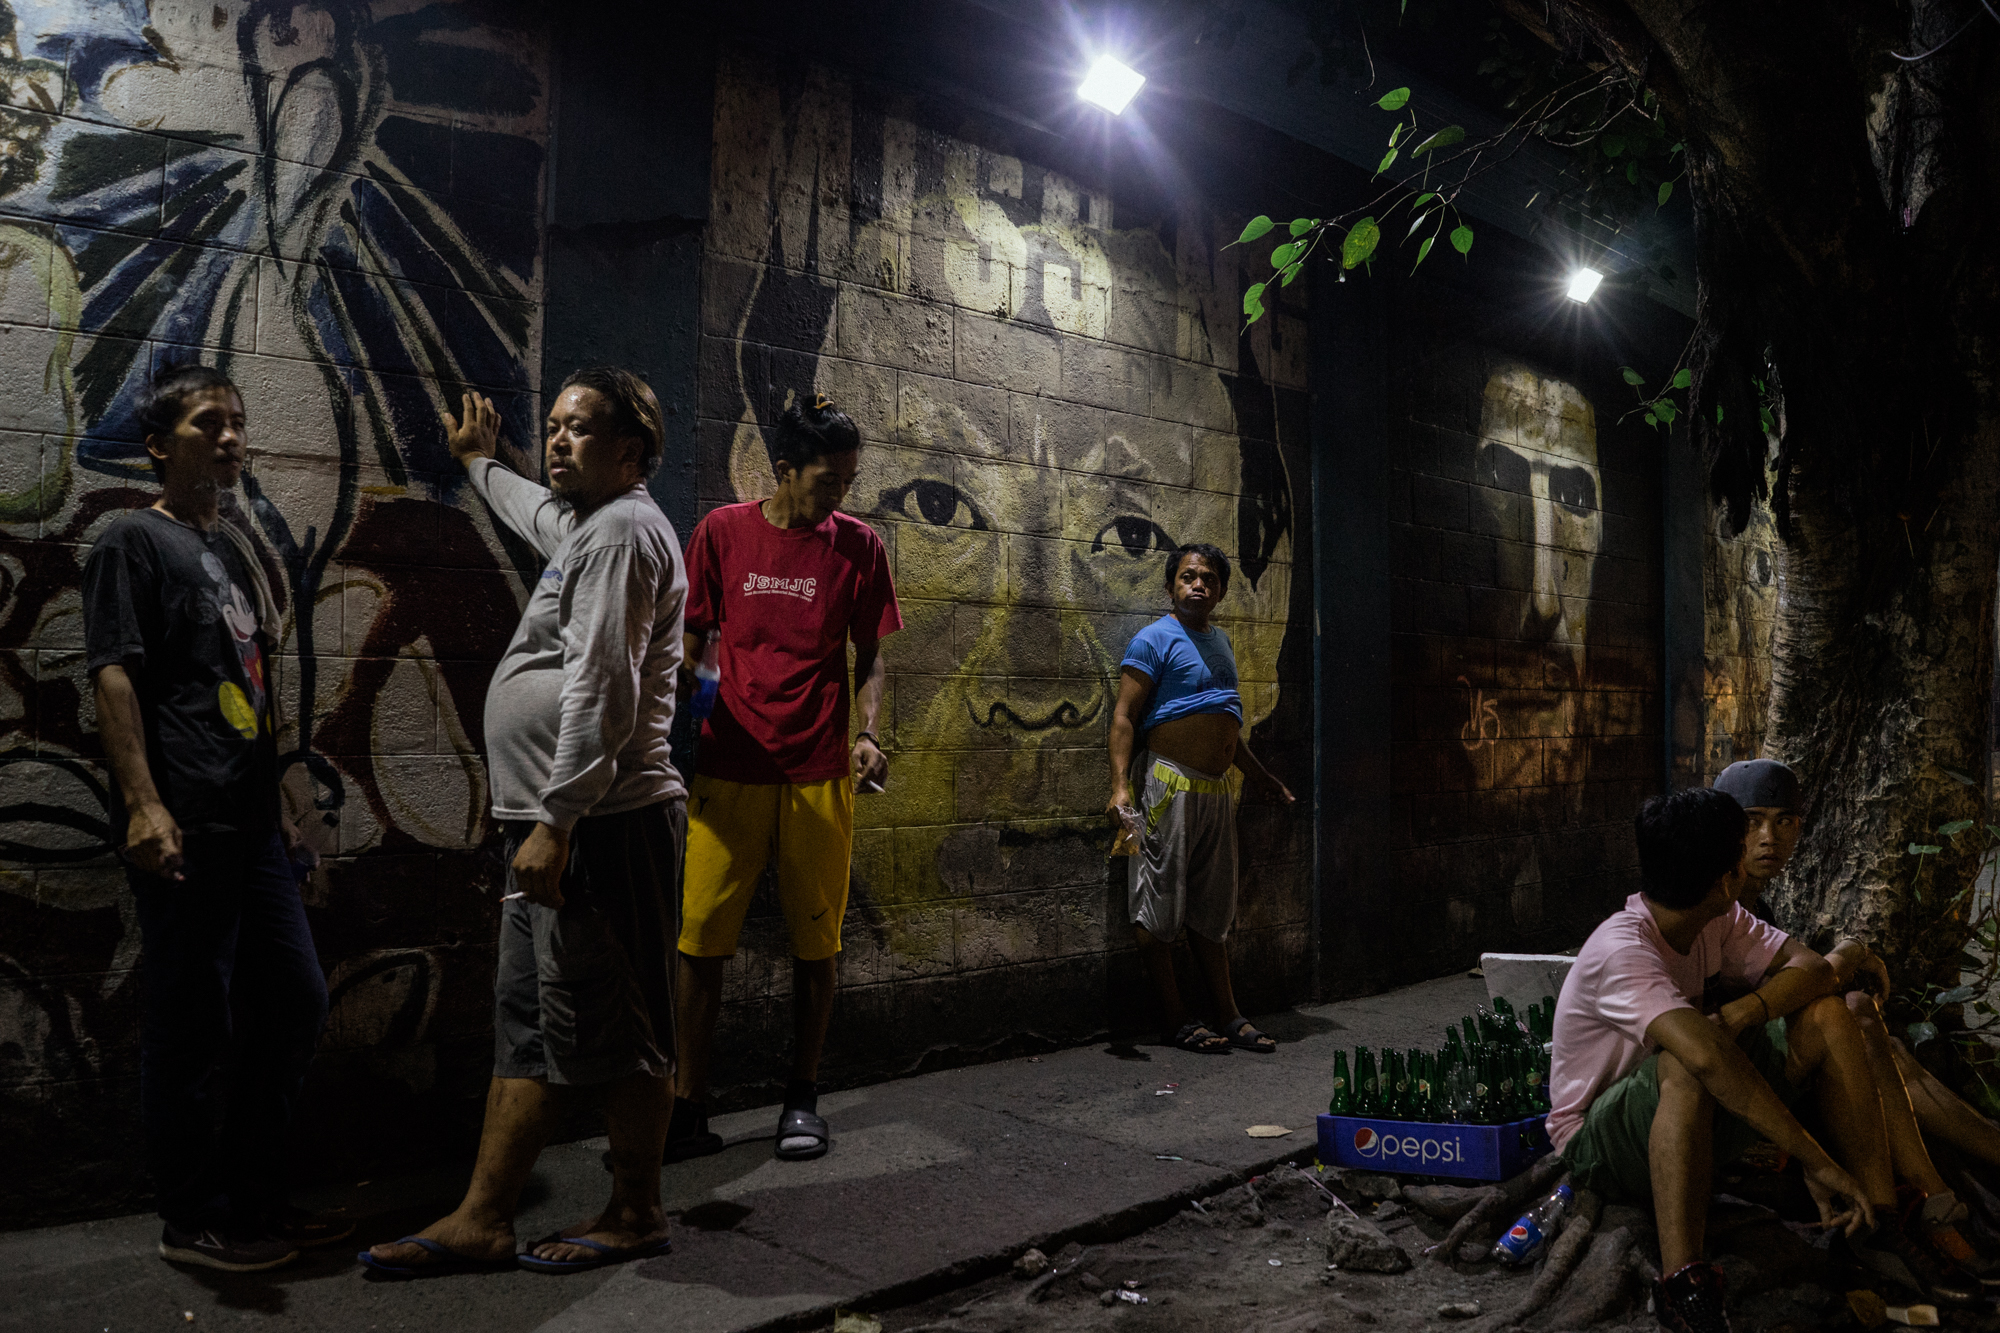 Filipino men are seen by a wall painting depicting President Rodrigo Duterte.